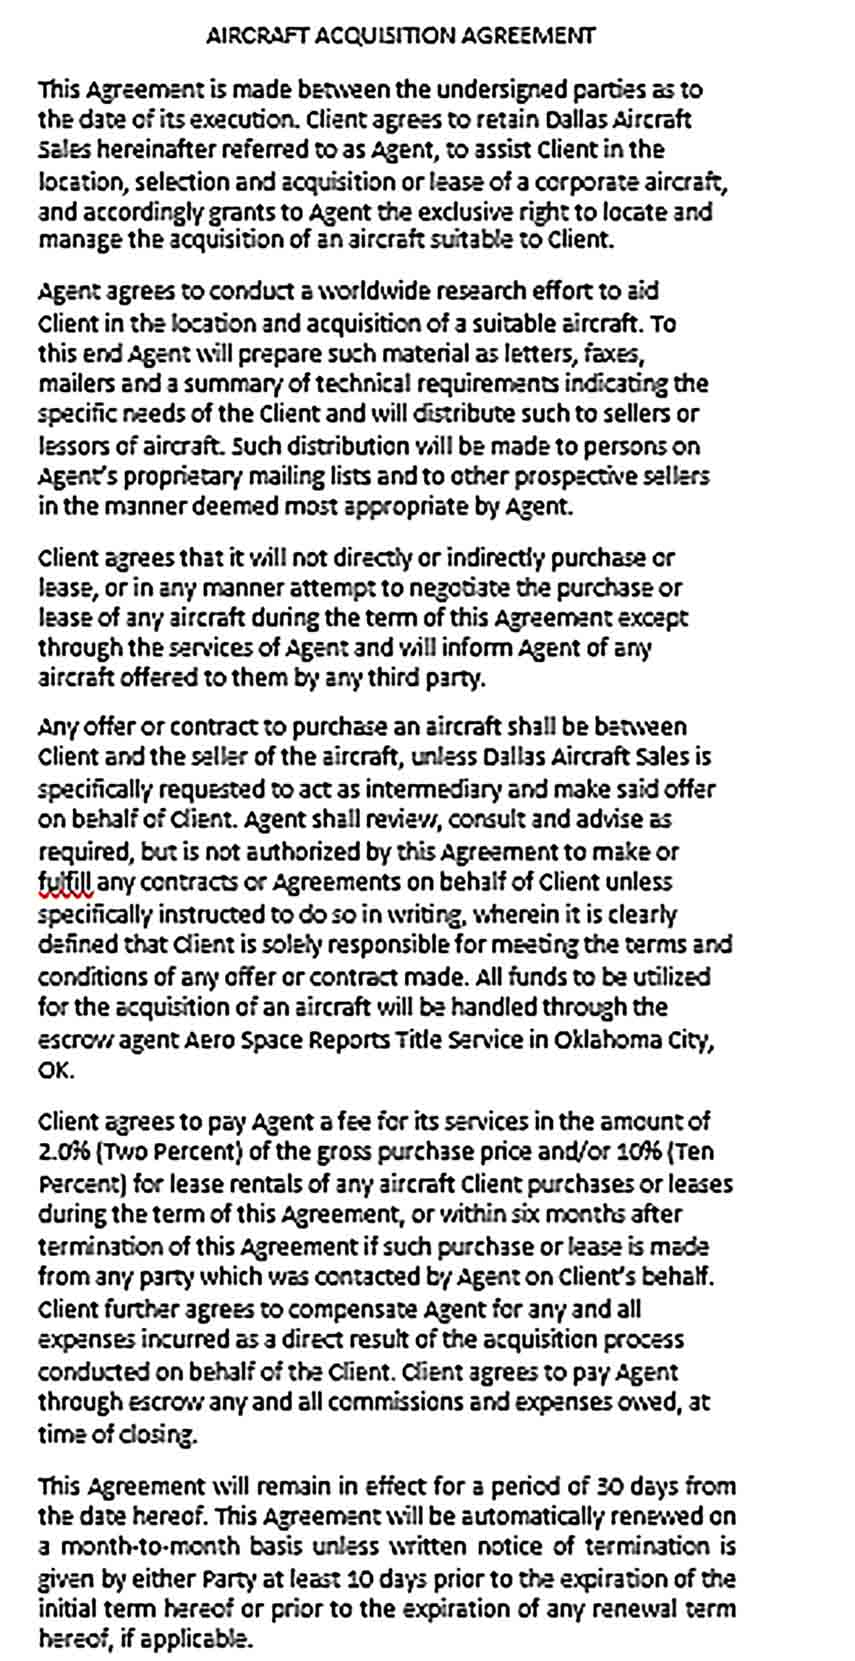 Sample Aircraft Acquisition Agreement